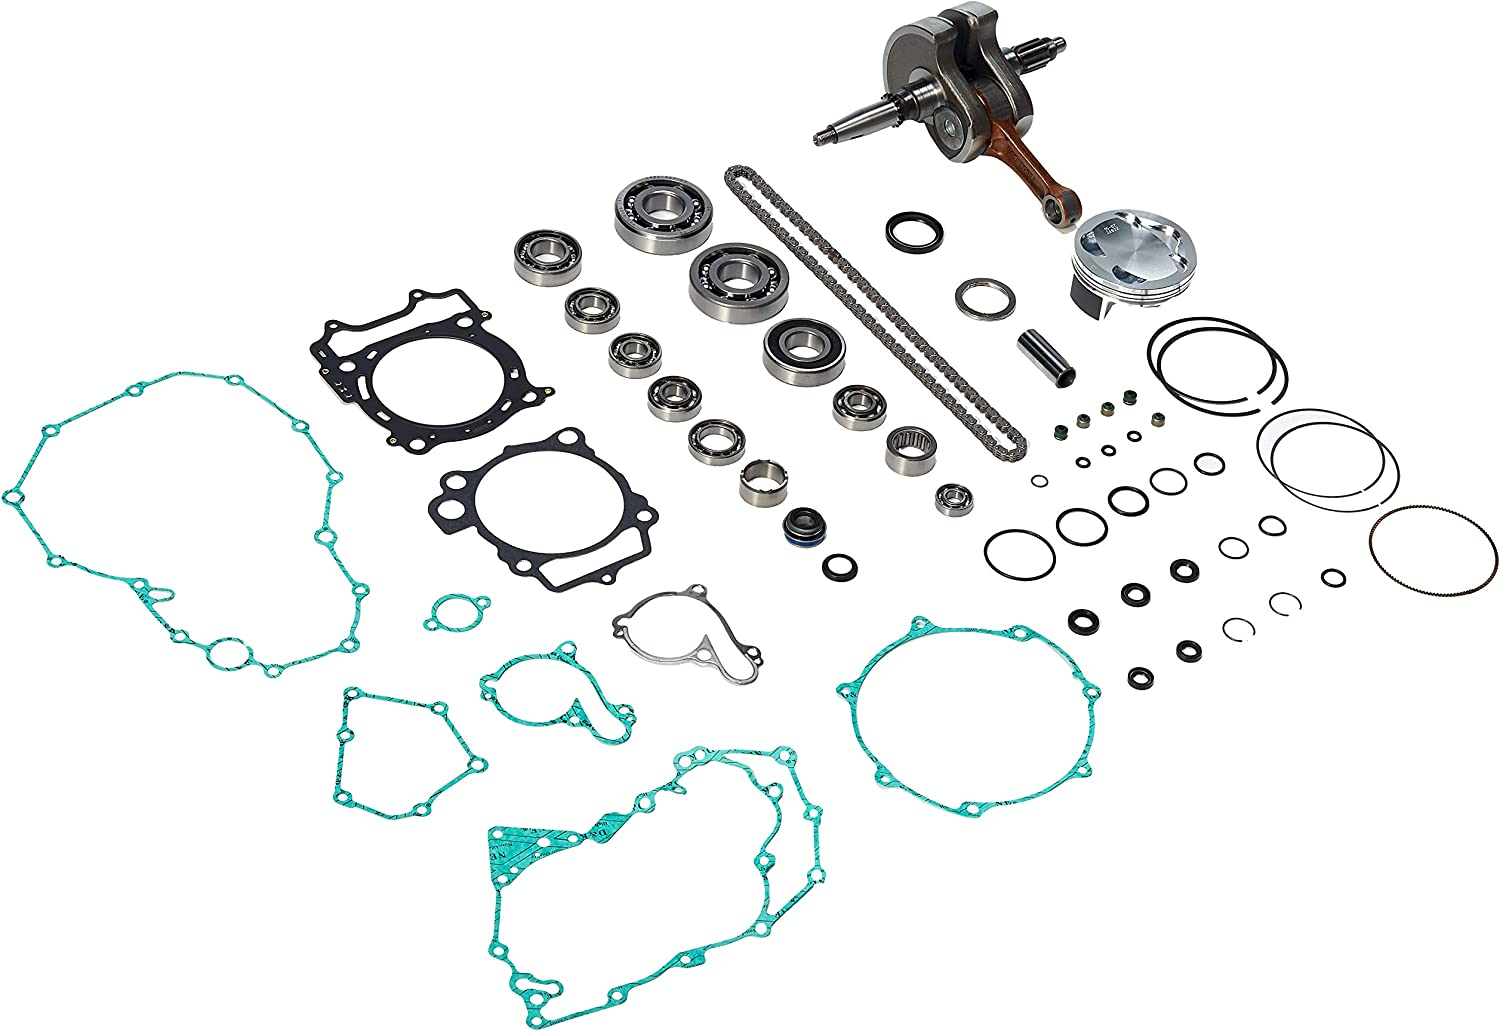 Wrench Rabbits WR101-147 Complete Very popular Rebuild Nippon regular agency Engine Kit